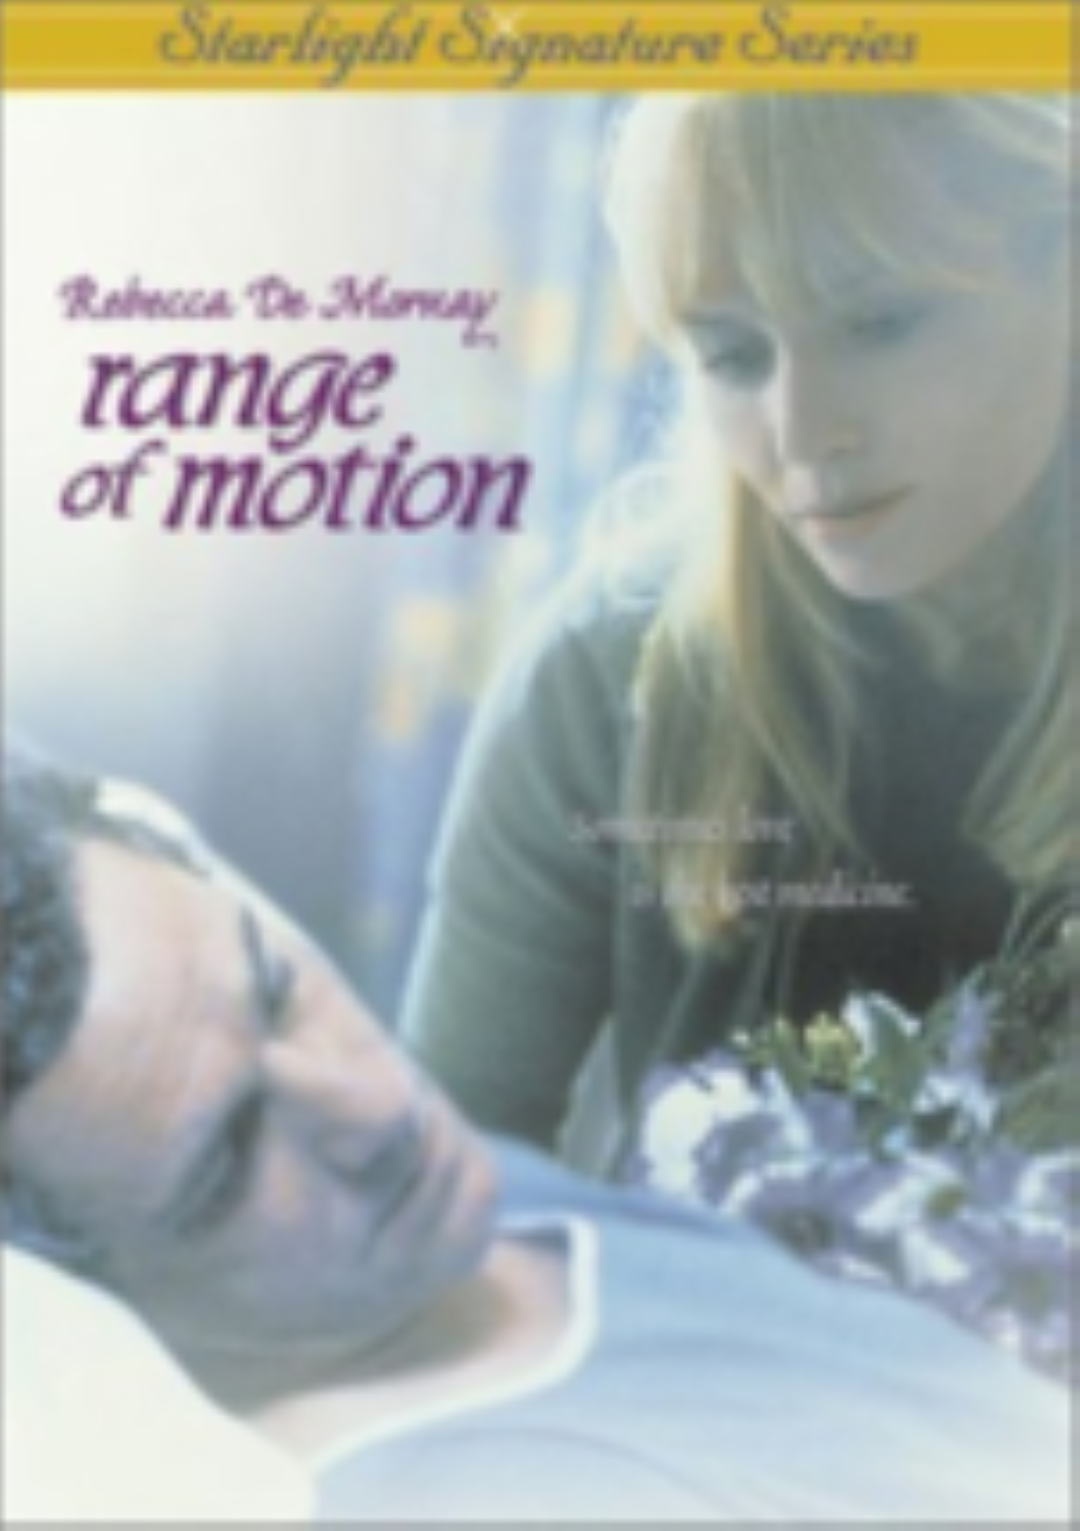 Range of Motion Dvd